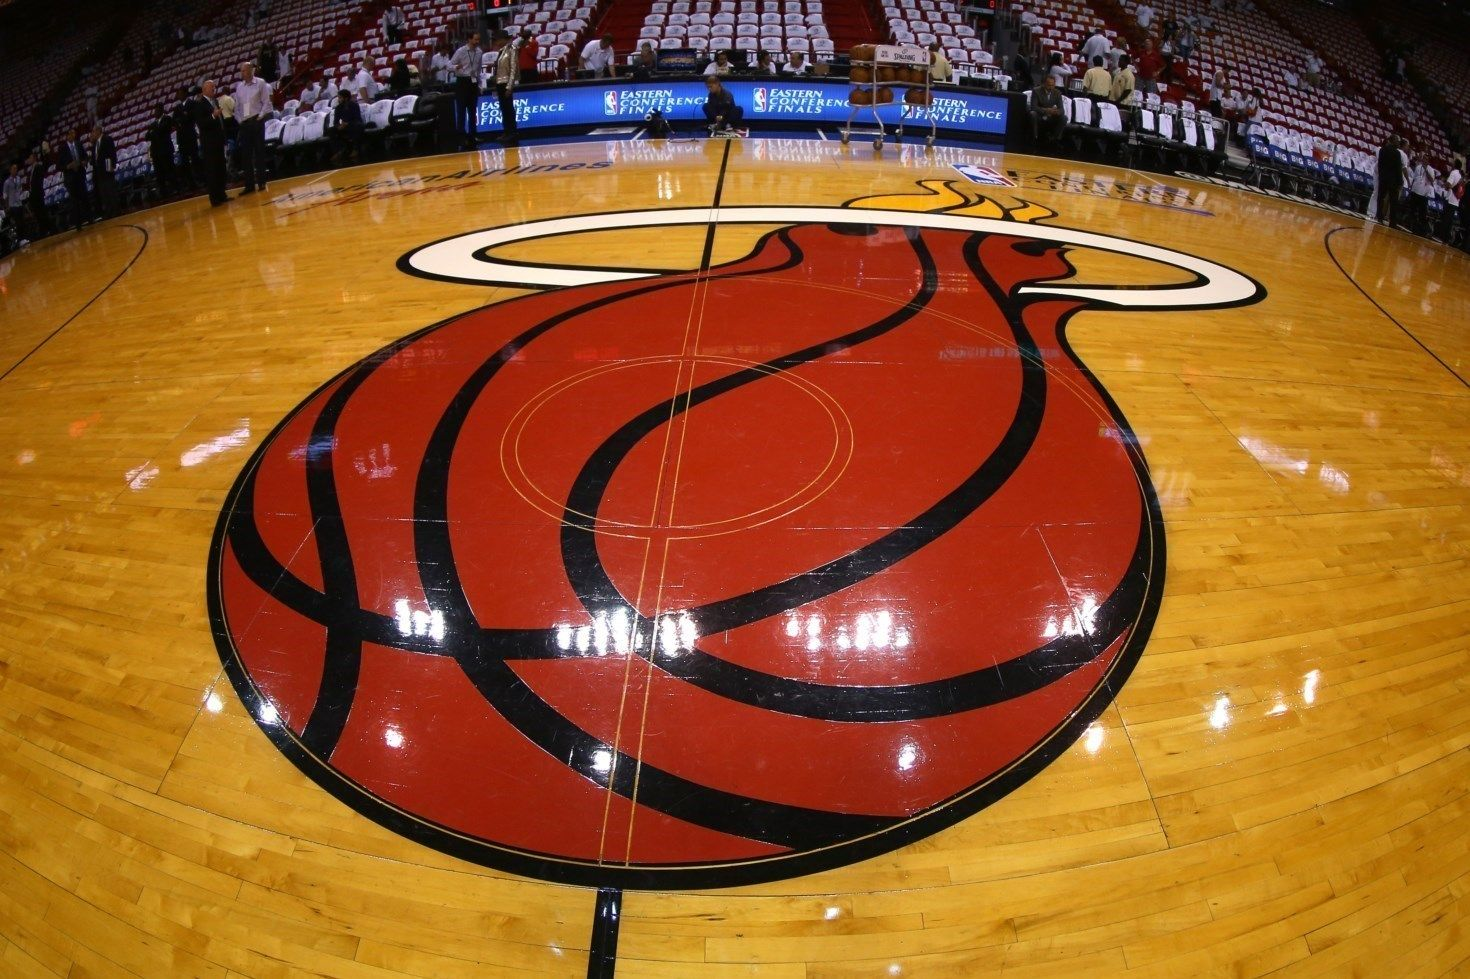 Miami Heat Vs Golden State Warriors Tue Nov 25 7 30 Pm Est Click The Gettyimages Picture To Access The Mov Mac Backgrounds Basketball Wallpaper Miami Heat